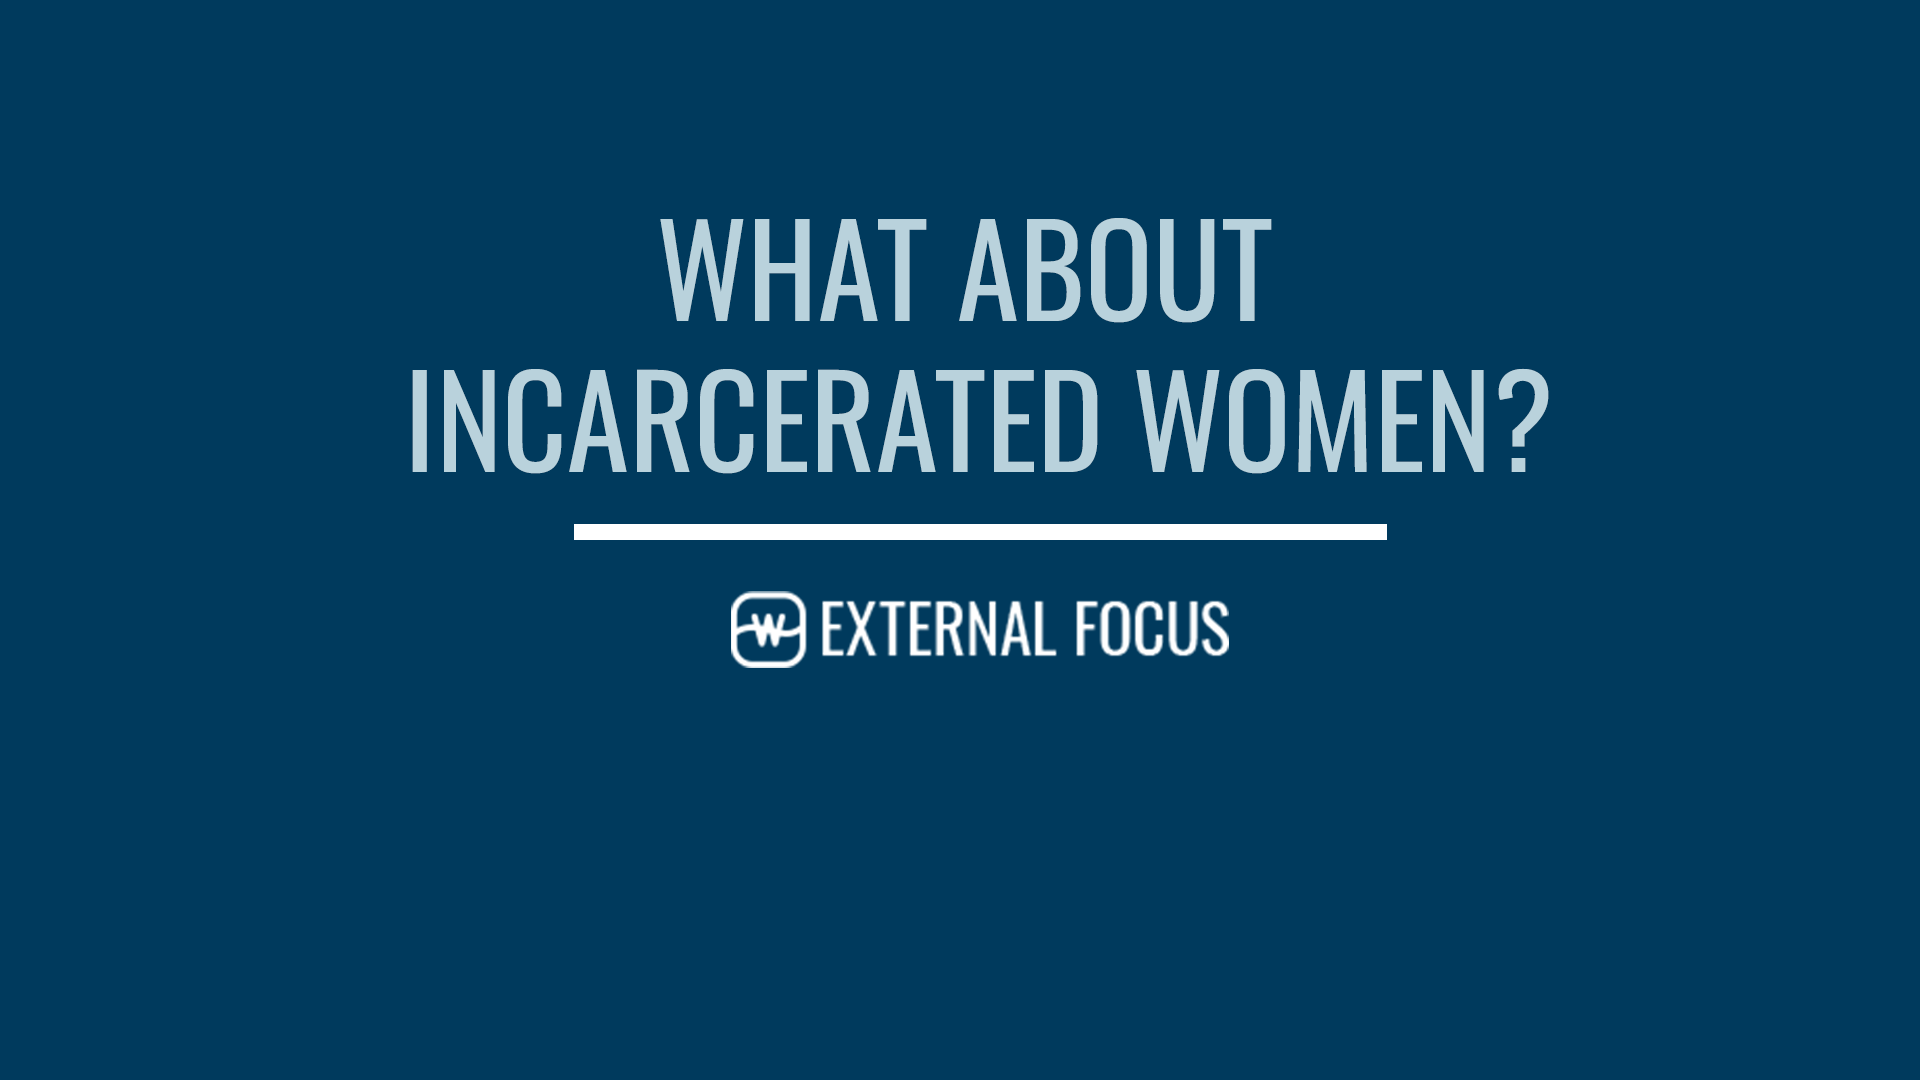 What About Incarcerated Women?